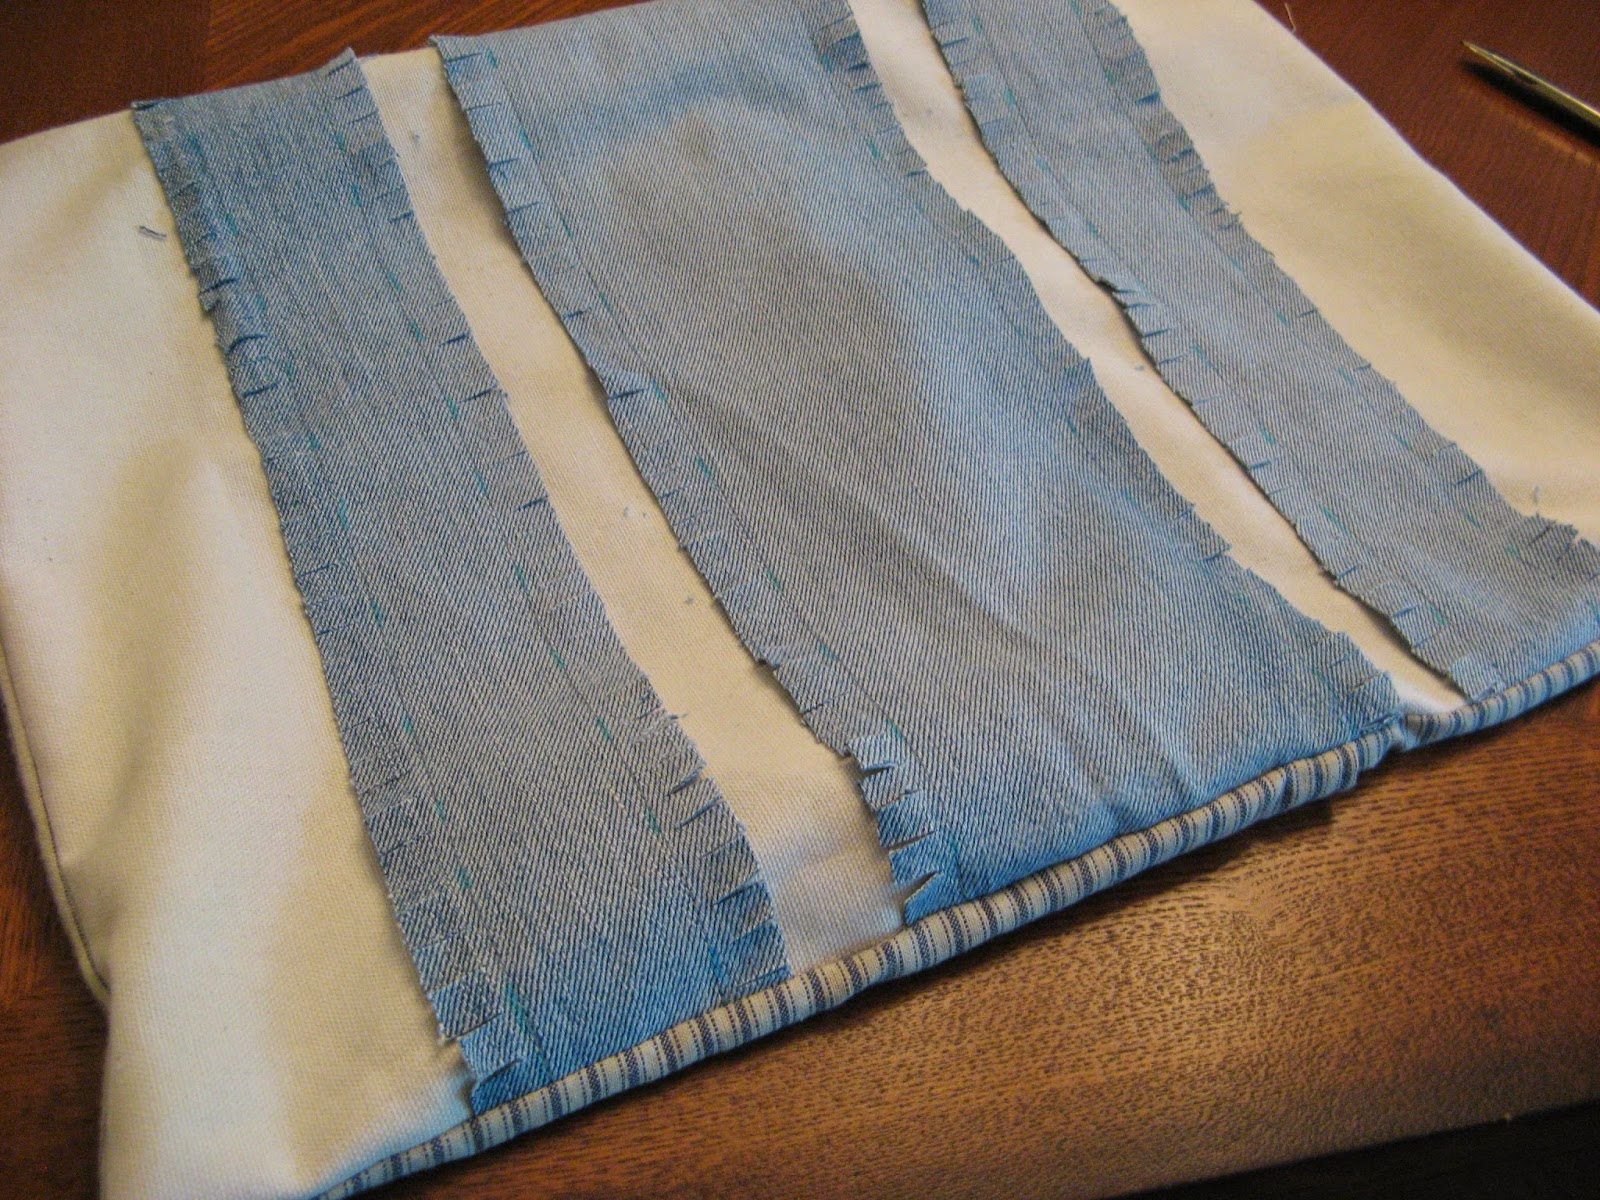 Denim Rag Pillow - Step 4